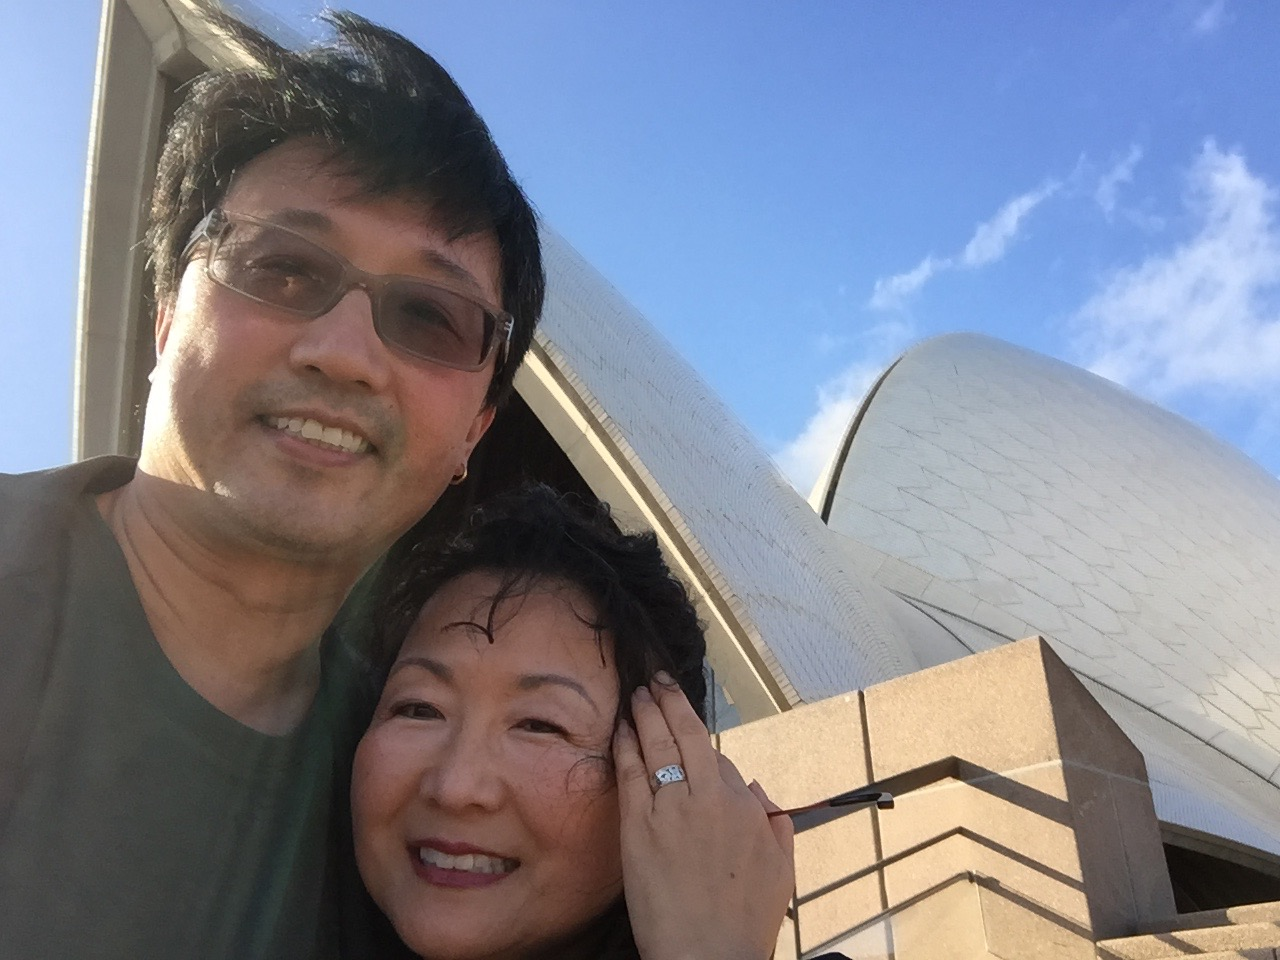 Windy day outside the Sydney Opera House